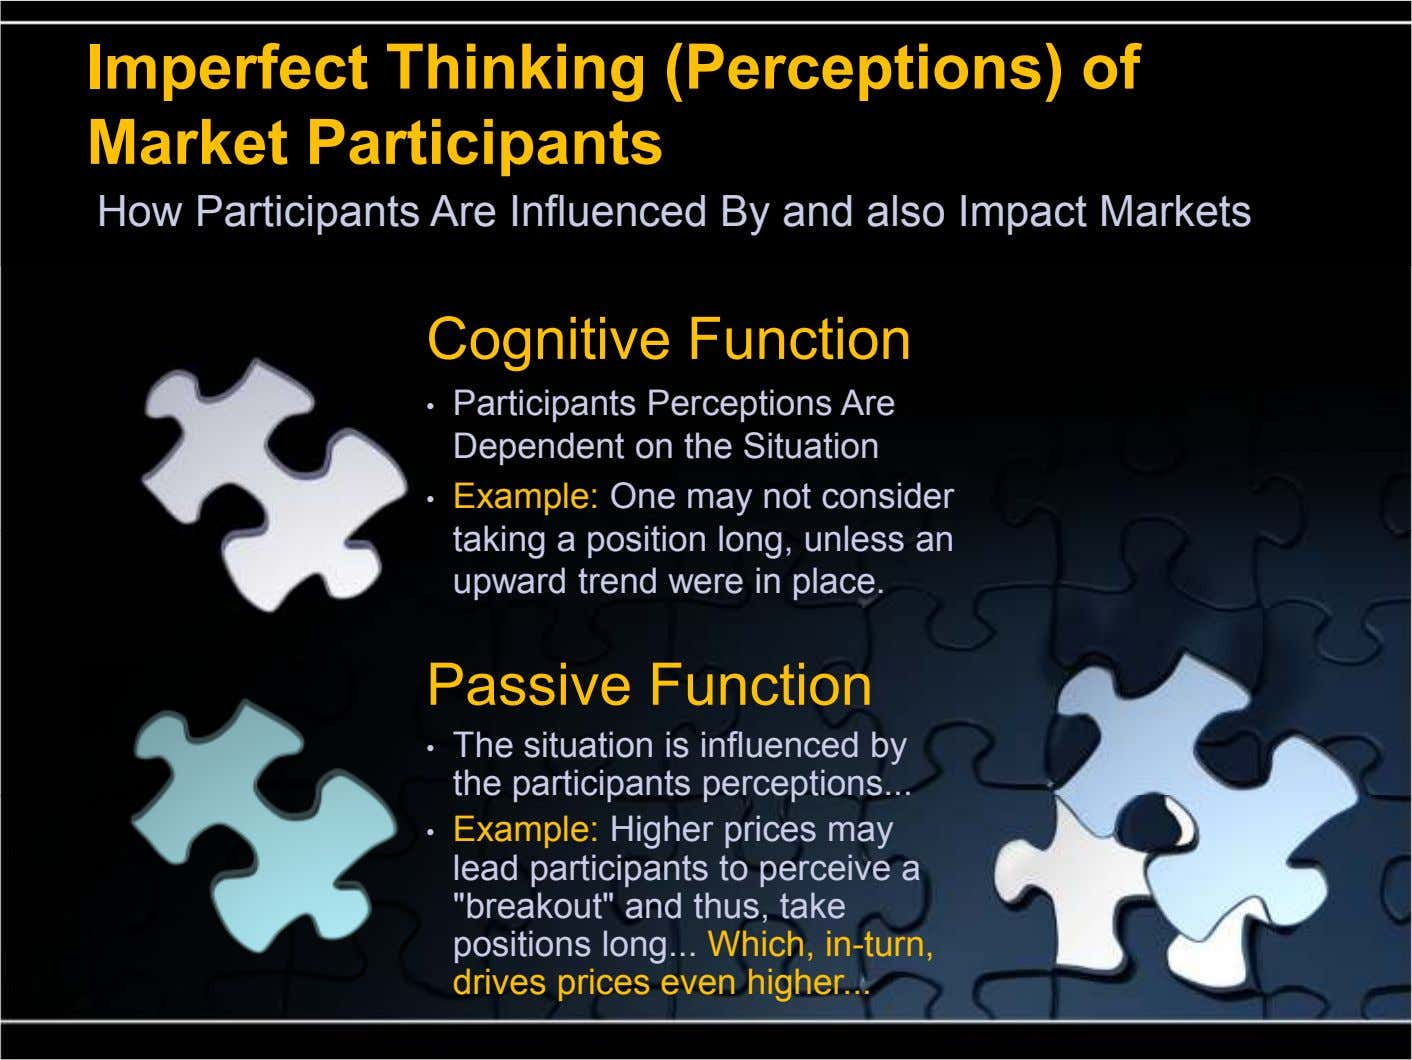 Imperfect Thinking (Perceptions) of Market Participants How Participants Are Influenced By and also Impact Markets Cognitive